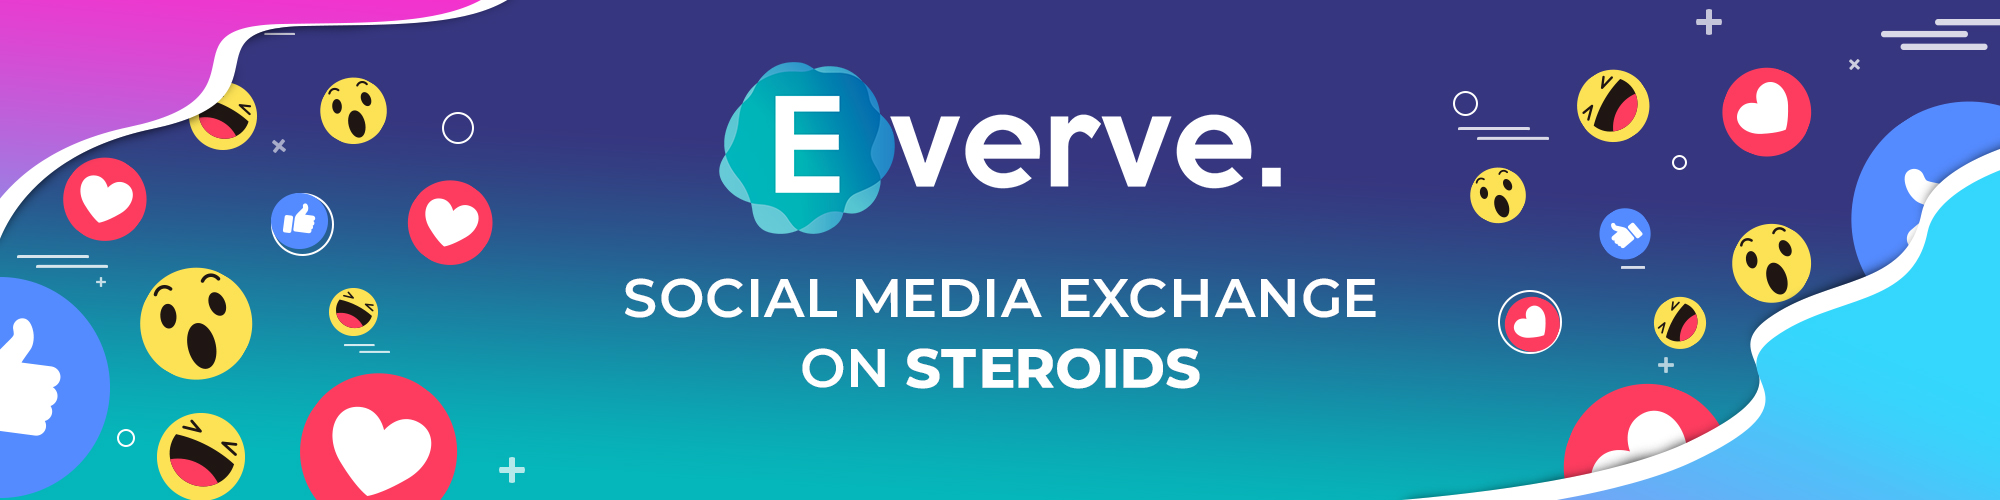 Social Media Exchange for Instagram, Facebook, YouTube | Everve